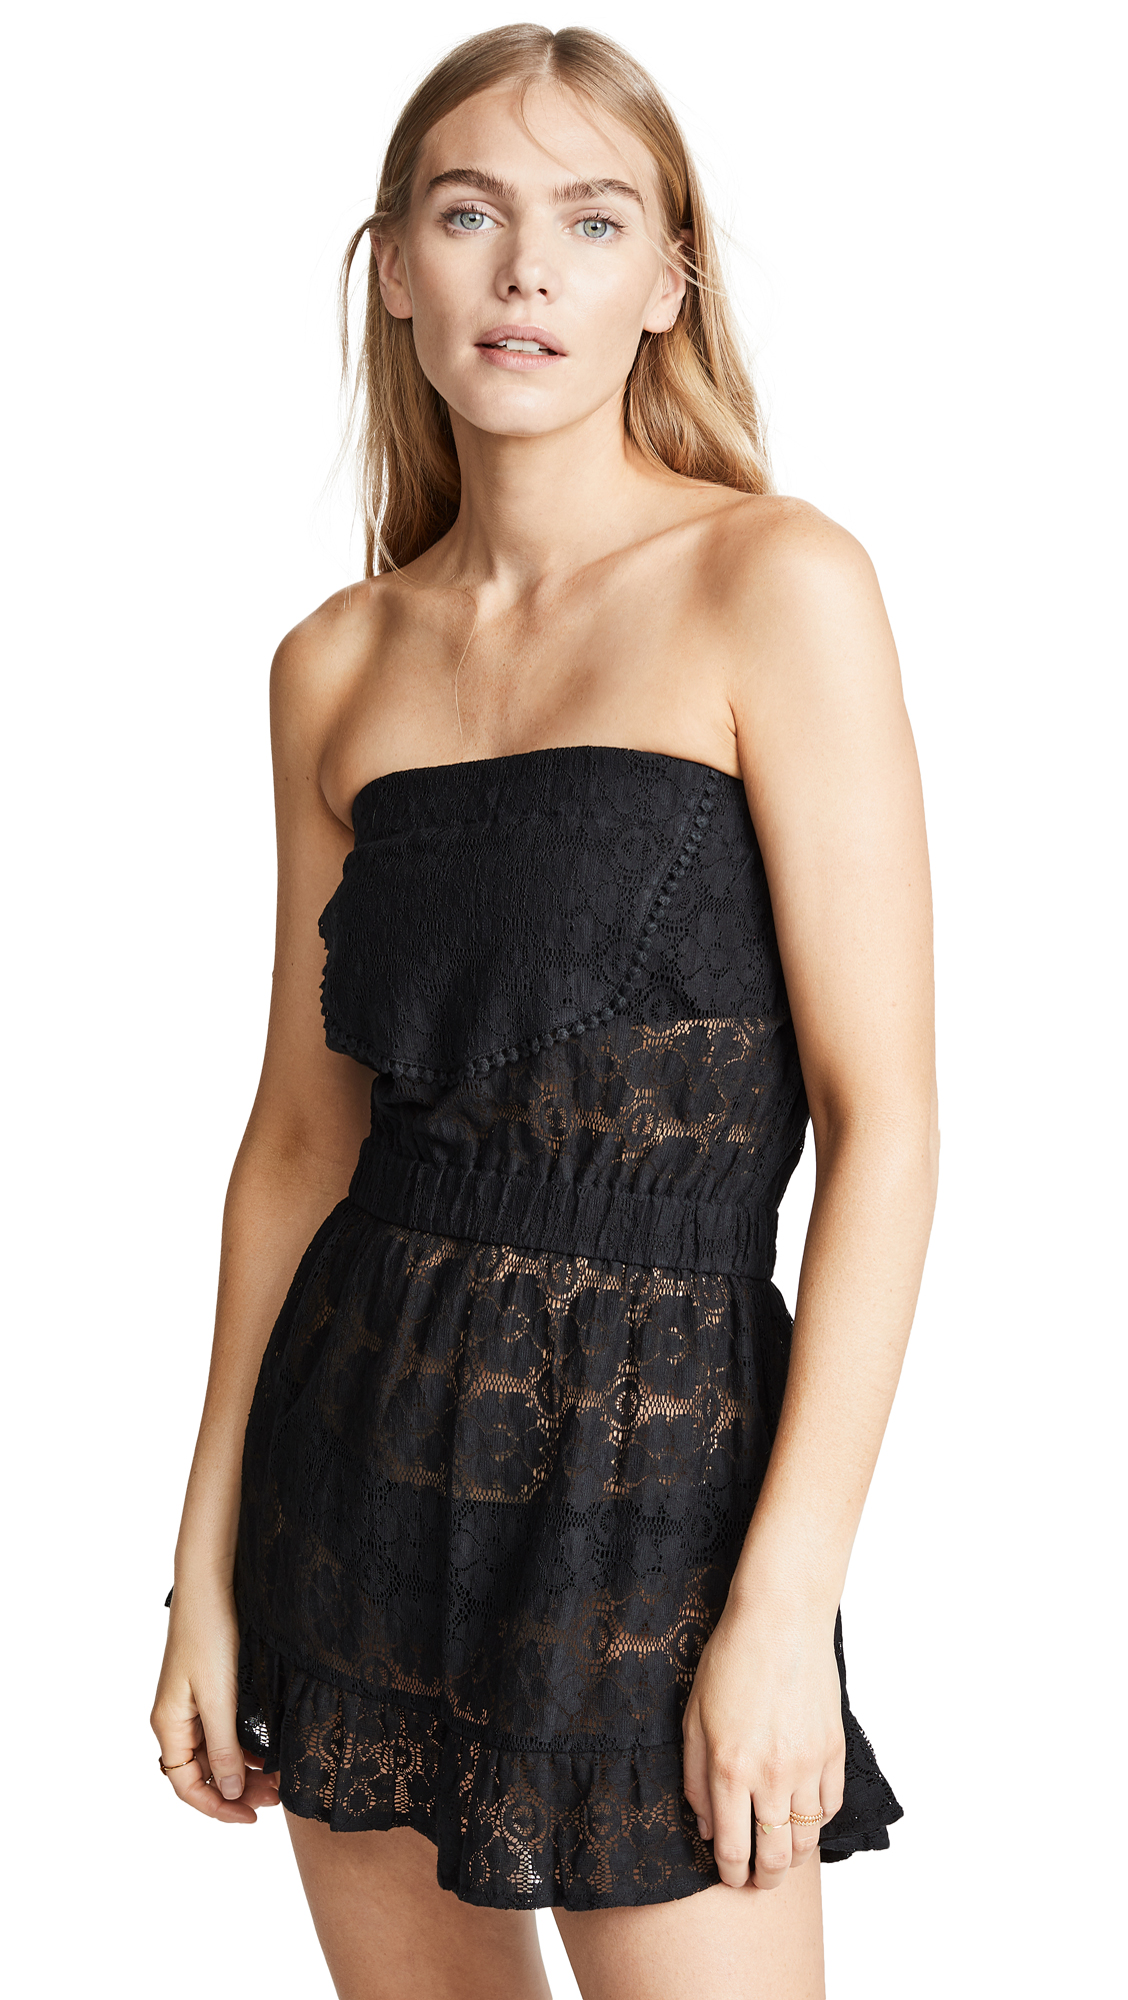 Kos Resort Strapless Lace Cover Up Dress Shopbop Save Up